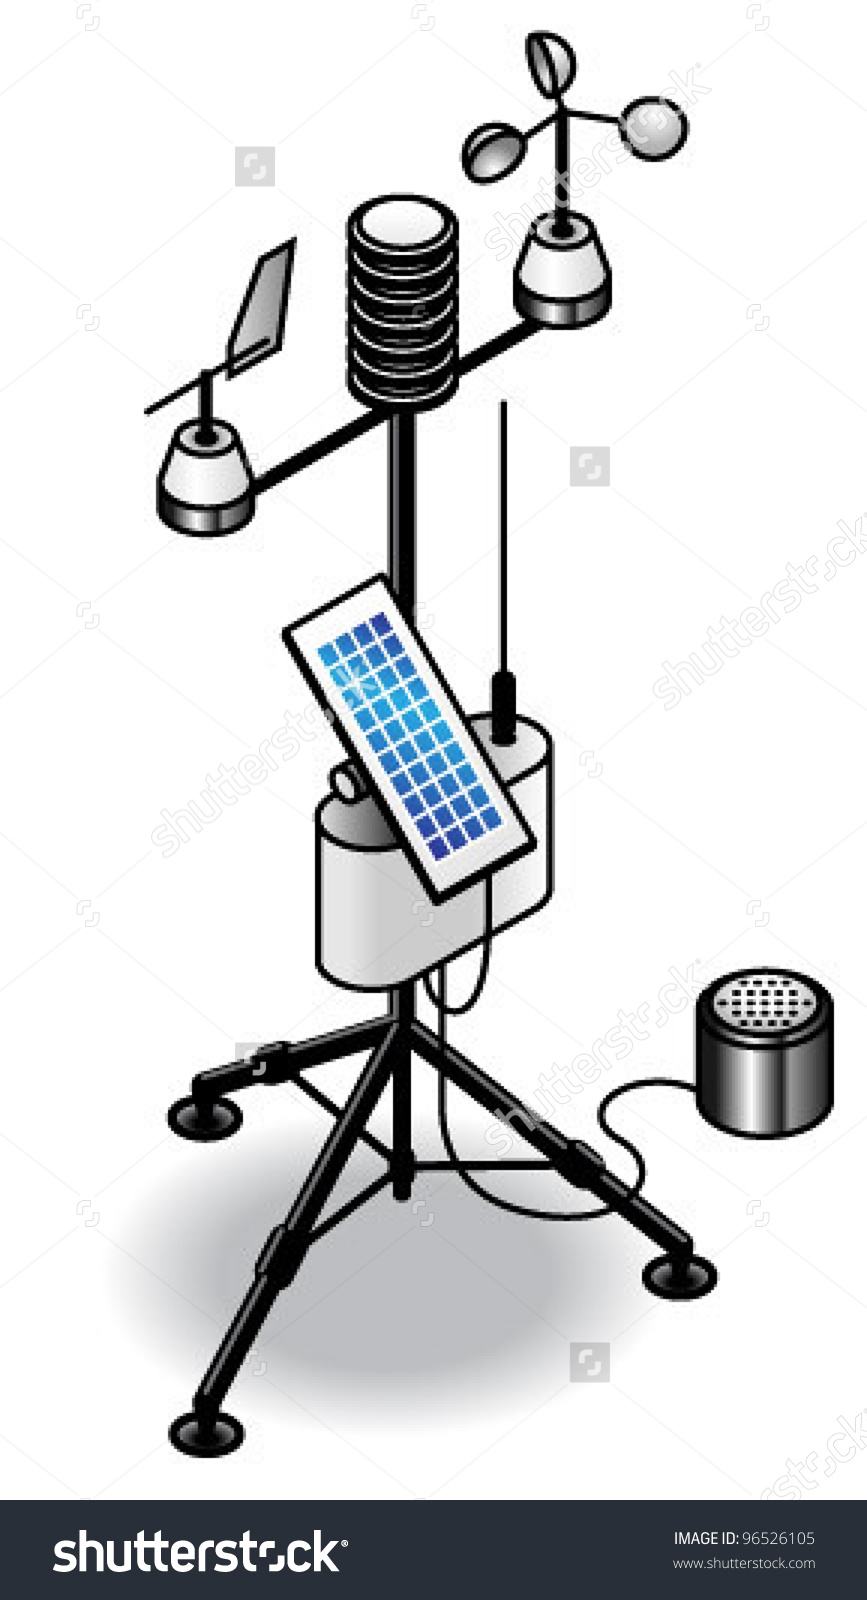 Transportable Weather Station Solar Panel Antenna Stock Vector.